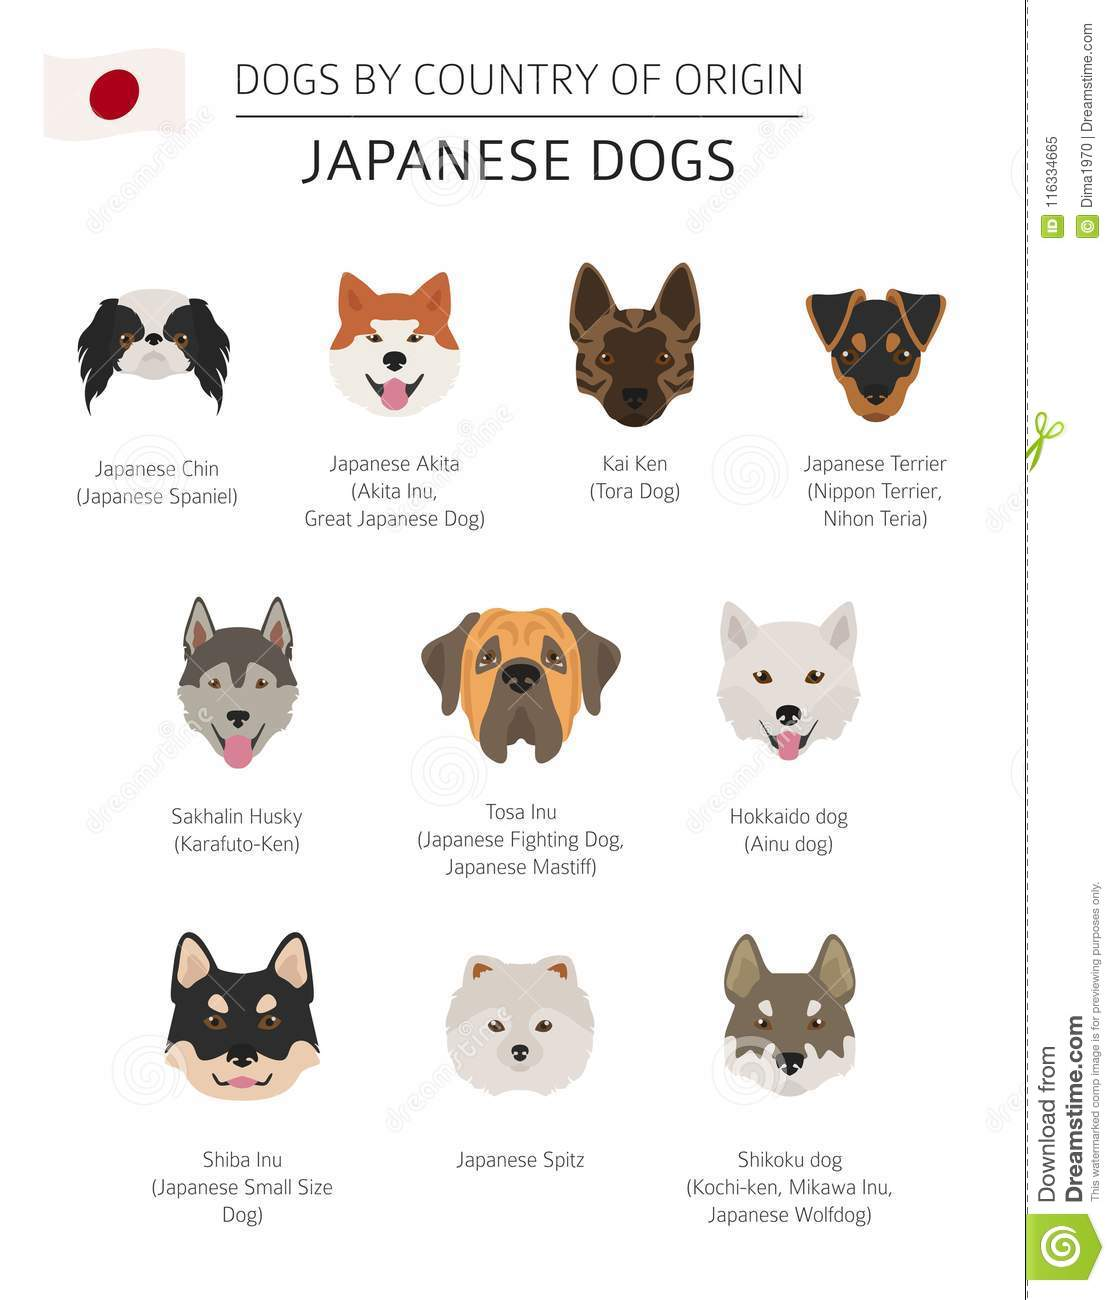 Dogs By Country Of Origin  Japanese Dog Breeds  Infographic